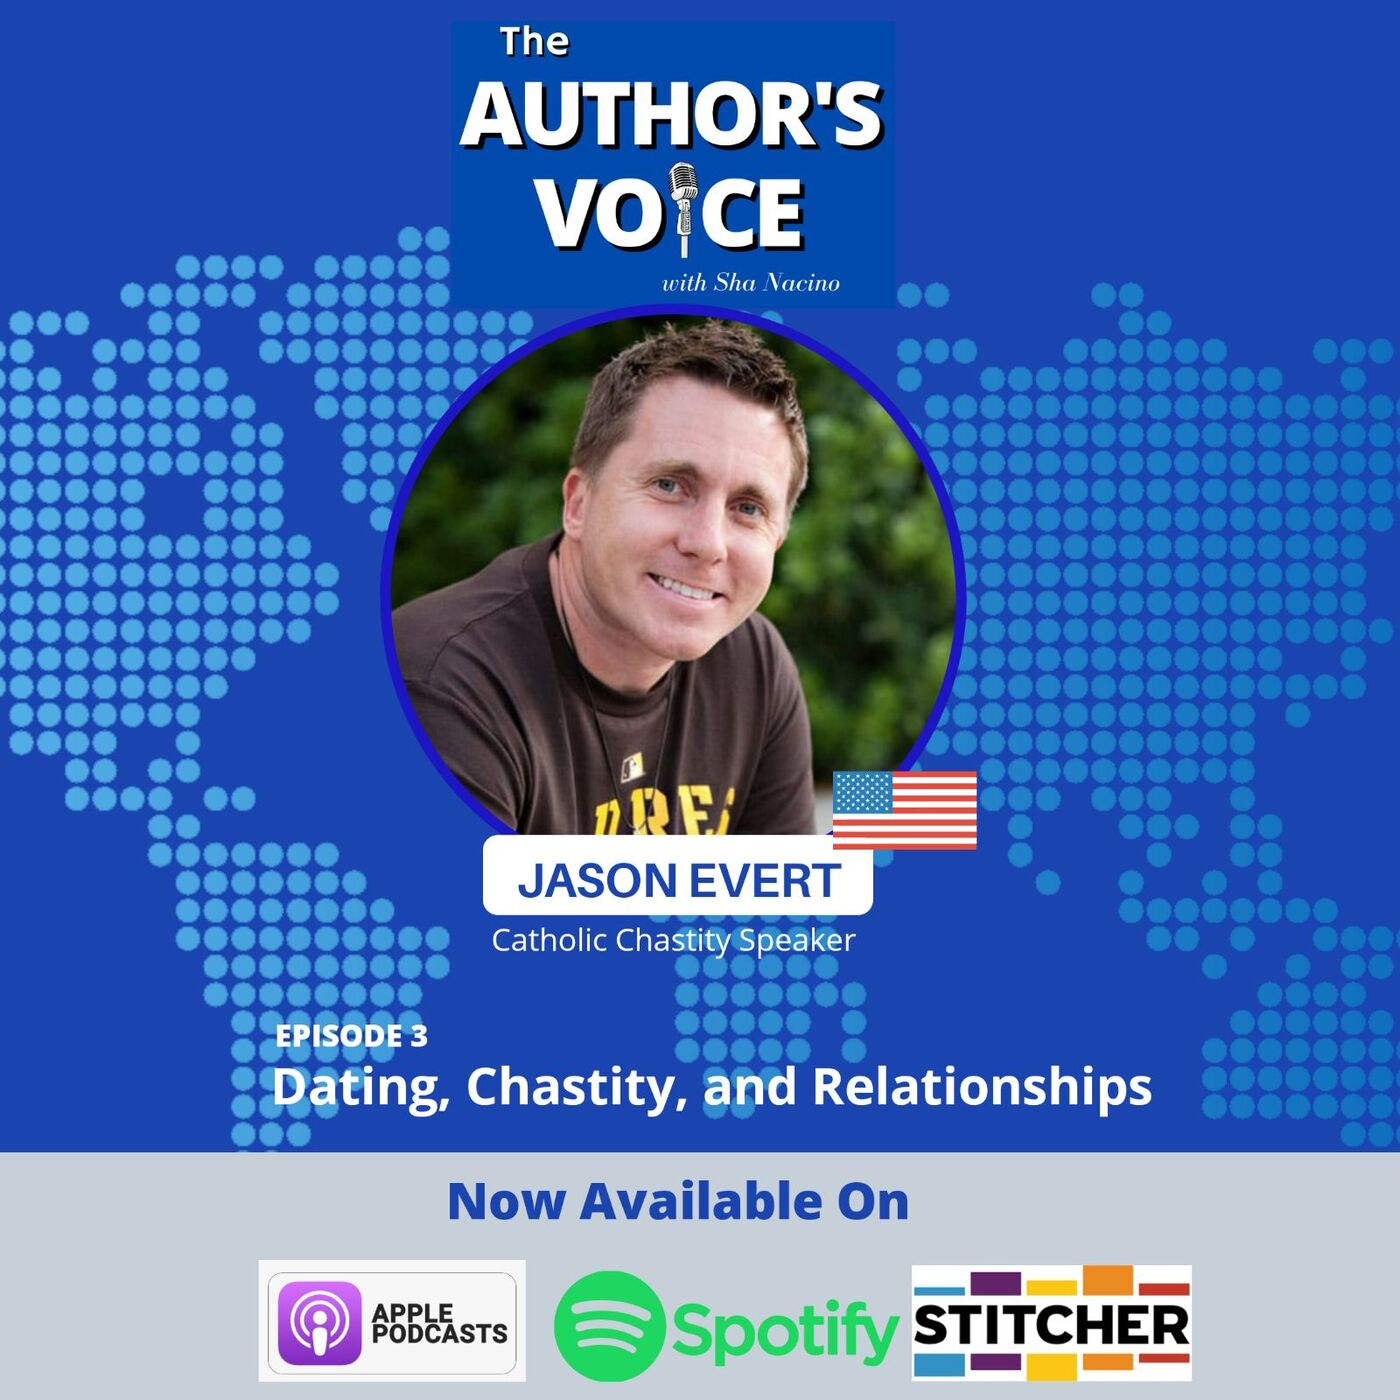 TAV 003: Chastity, Dating, and Relationships with Jason Evert